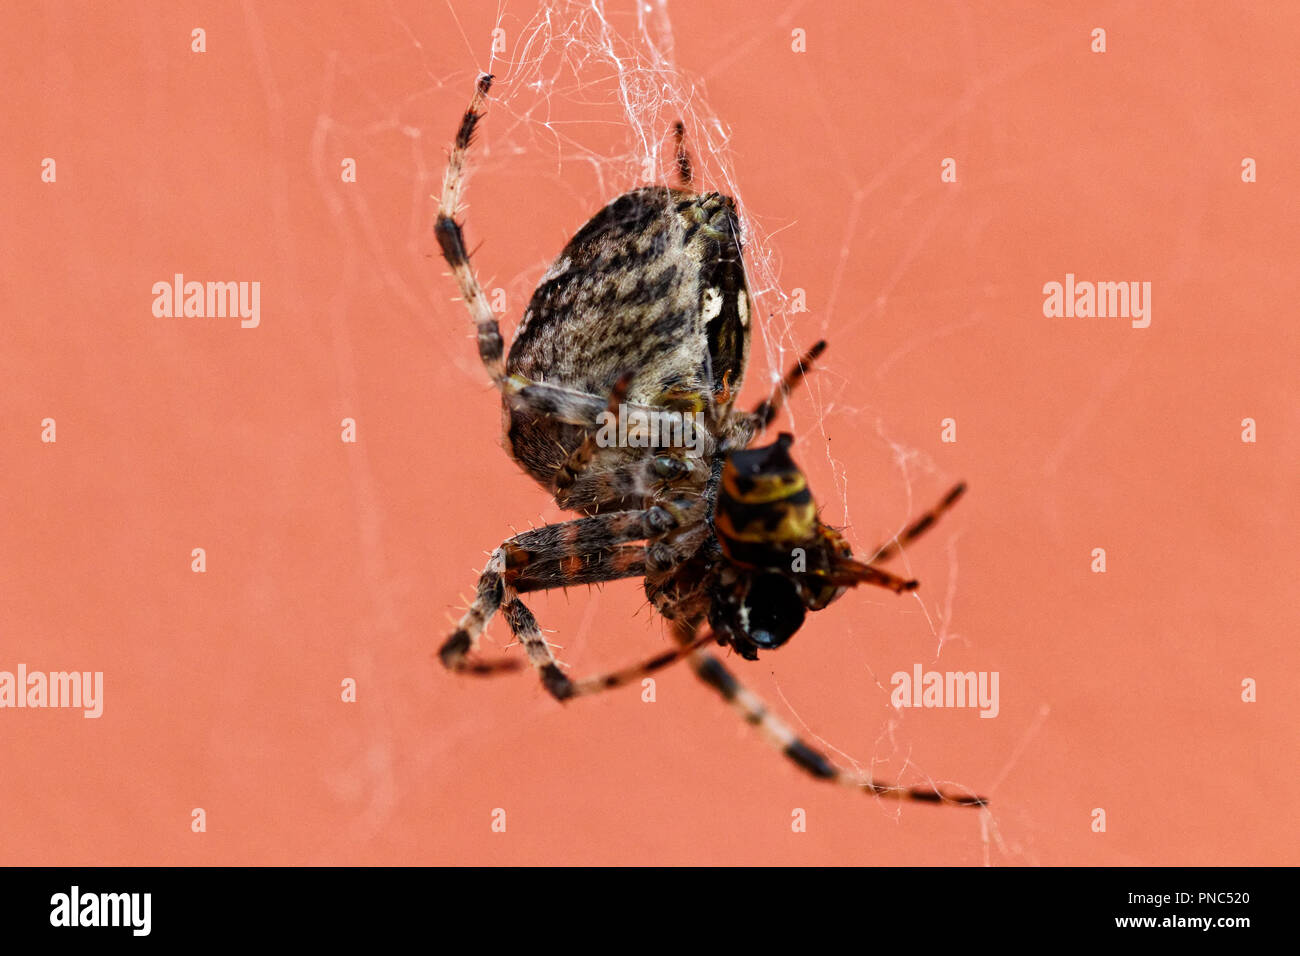 spider eats a wasp Stock Photo